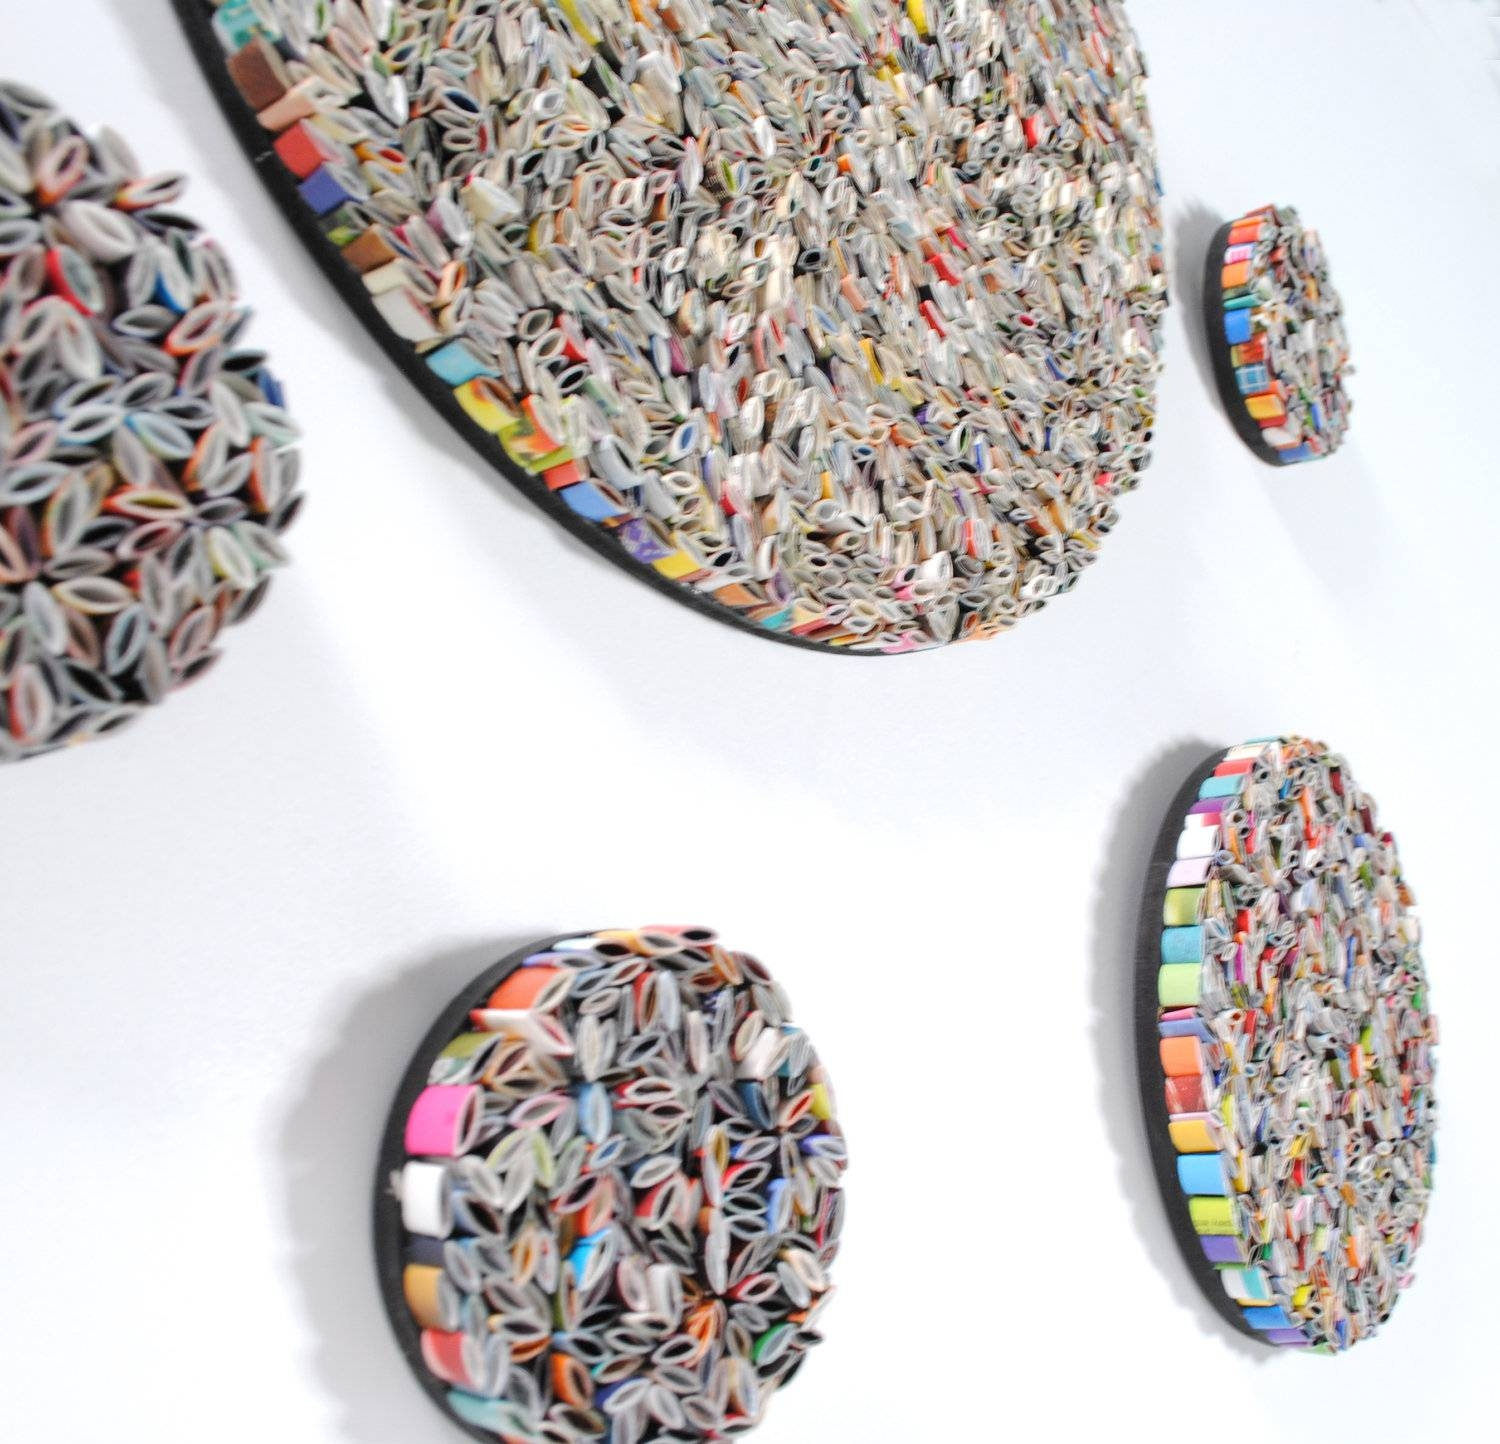 Set Of 5 Round Wall Art  Made From Recycled Magazines, Colorful Inside Most Current Recycled Wall Art (View 26 of 30)